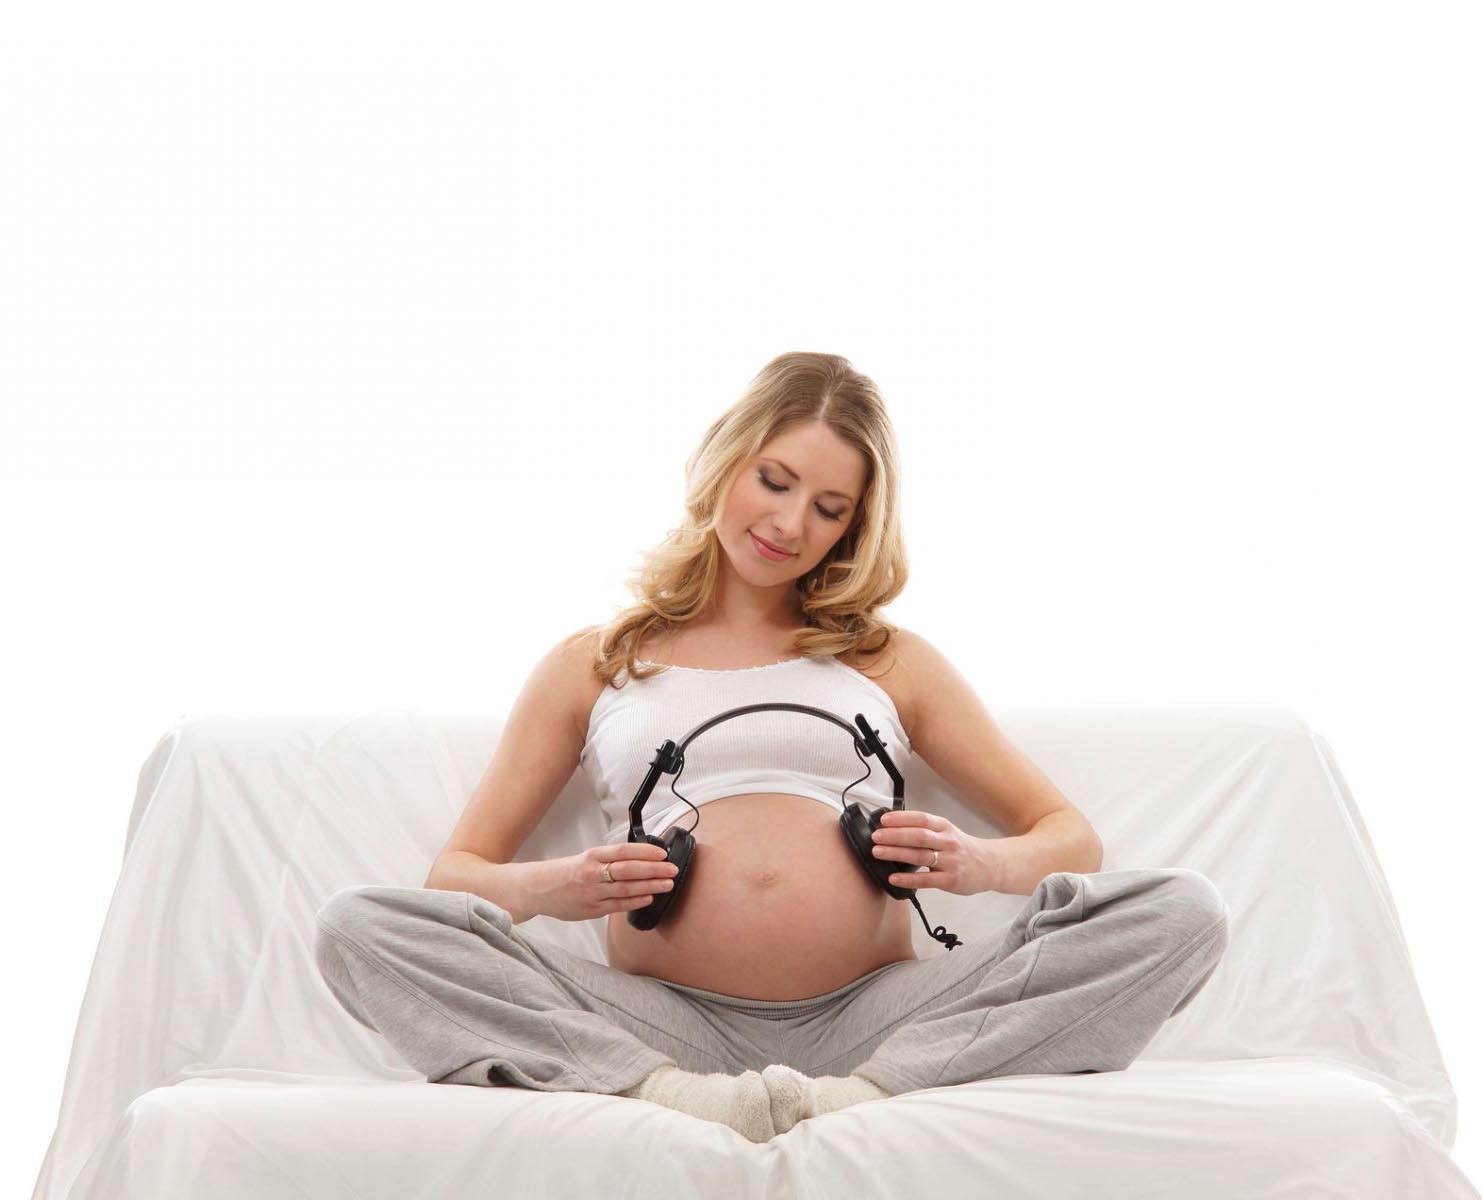 Reading poetry out loud during pregnancy helps the development of the child - image No. 1